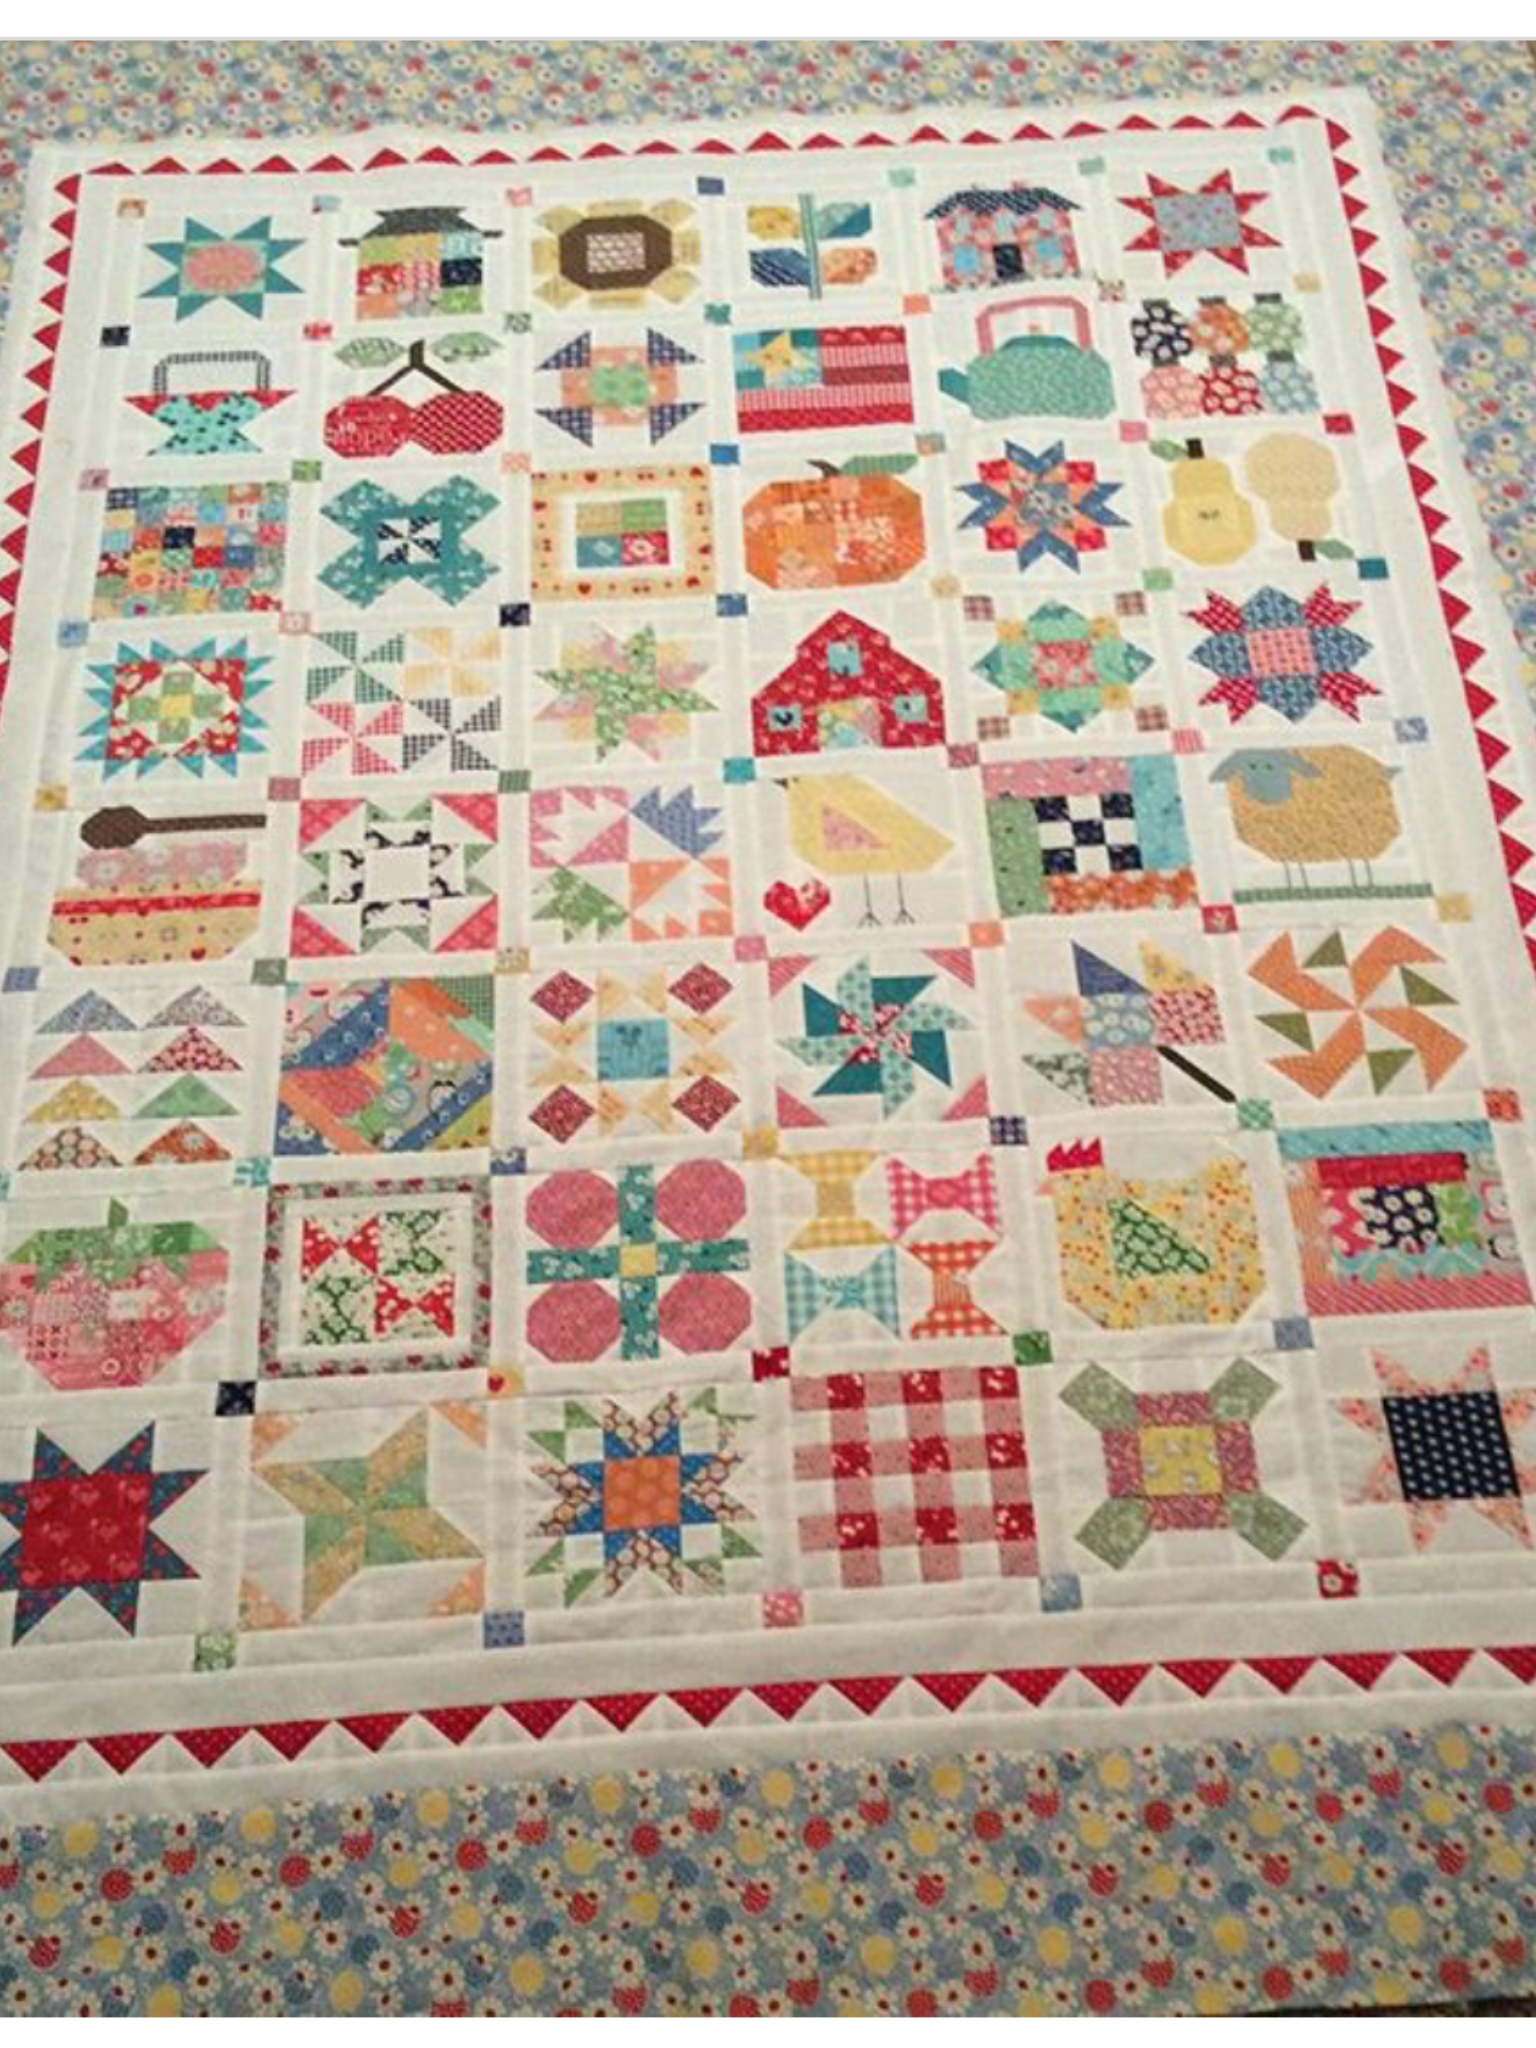 Lori Holt S Sampler Quilt From The Book Farmgirl Vintage Sampler Quilts Farmhouse Quilts Quilts